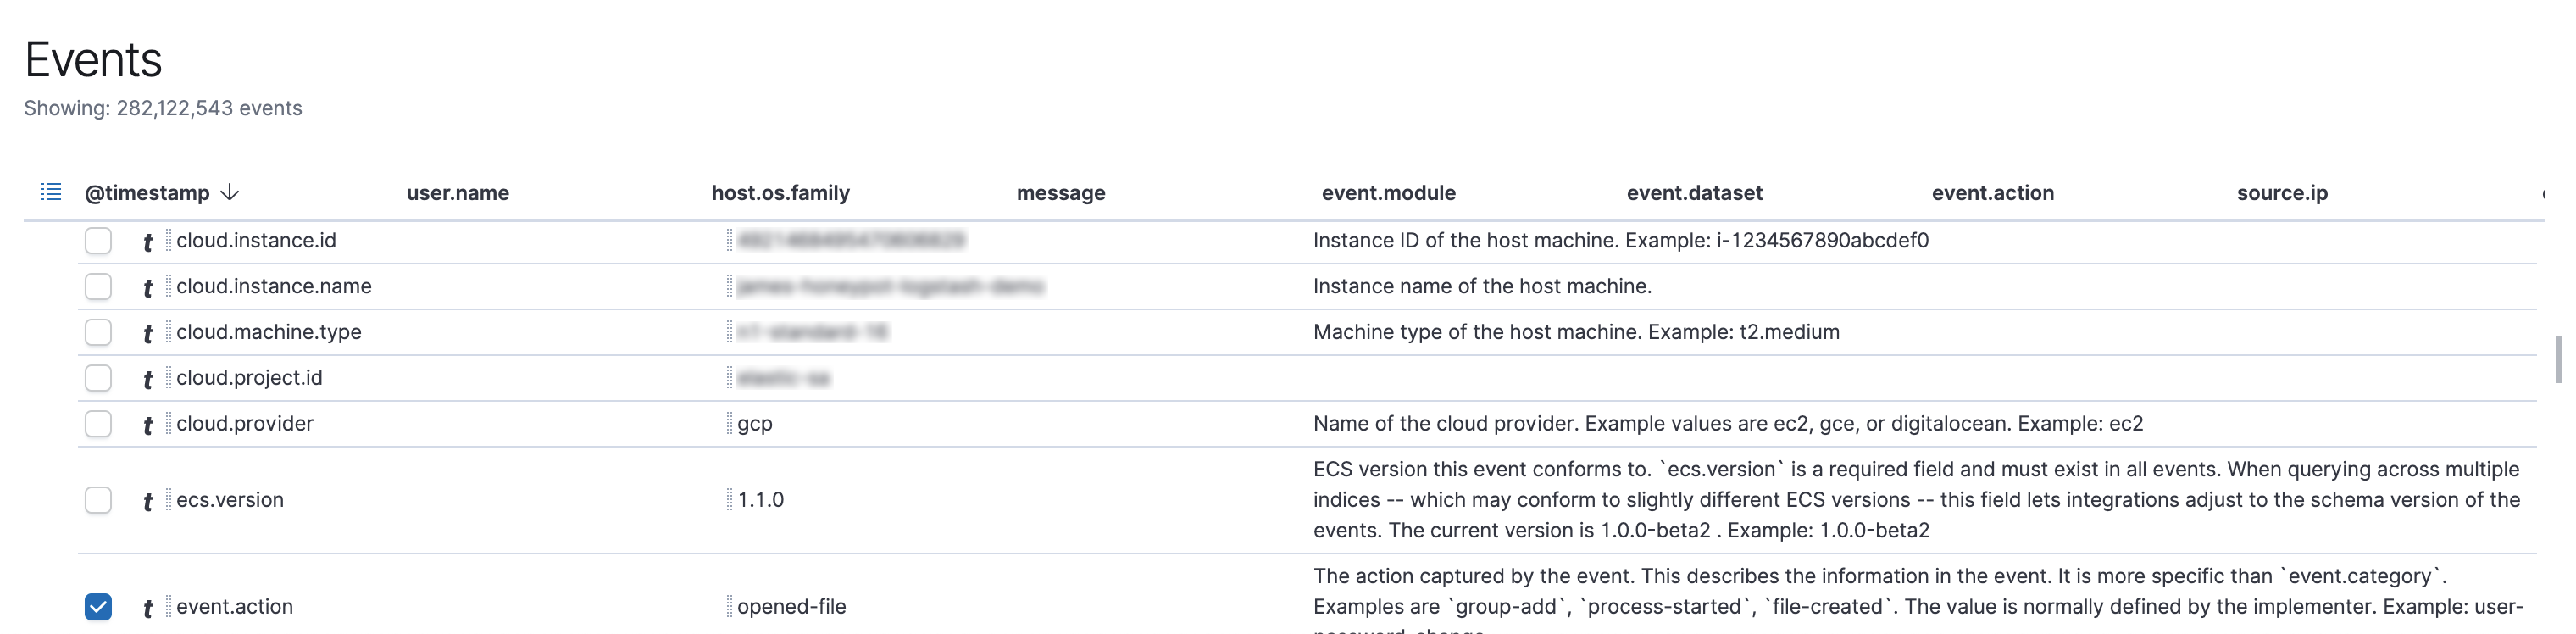 Ingest GCP events in ECS format and view them in the SIEM app